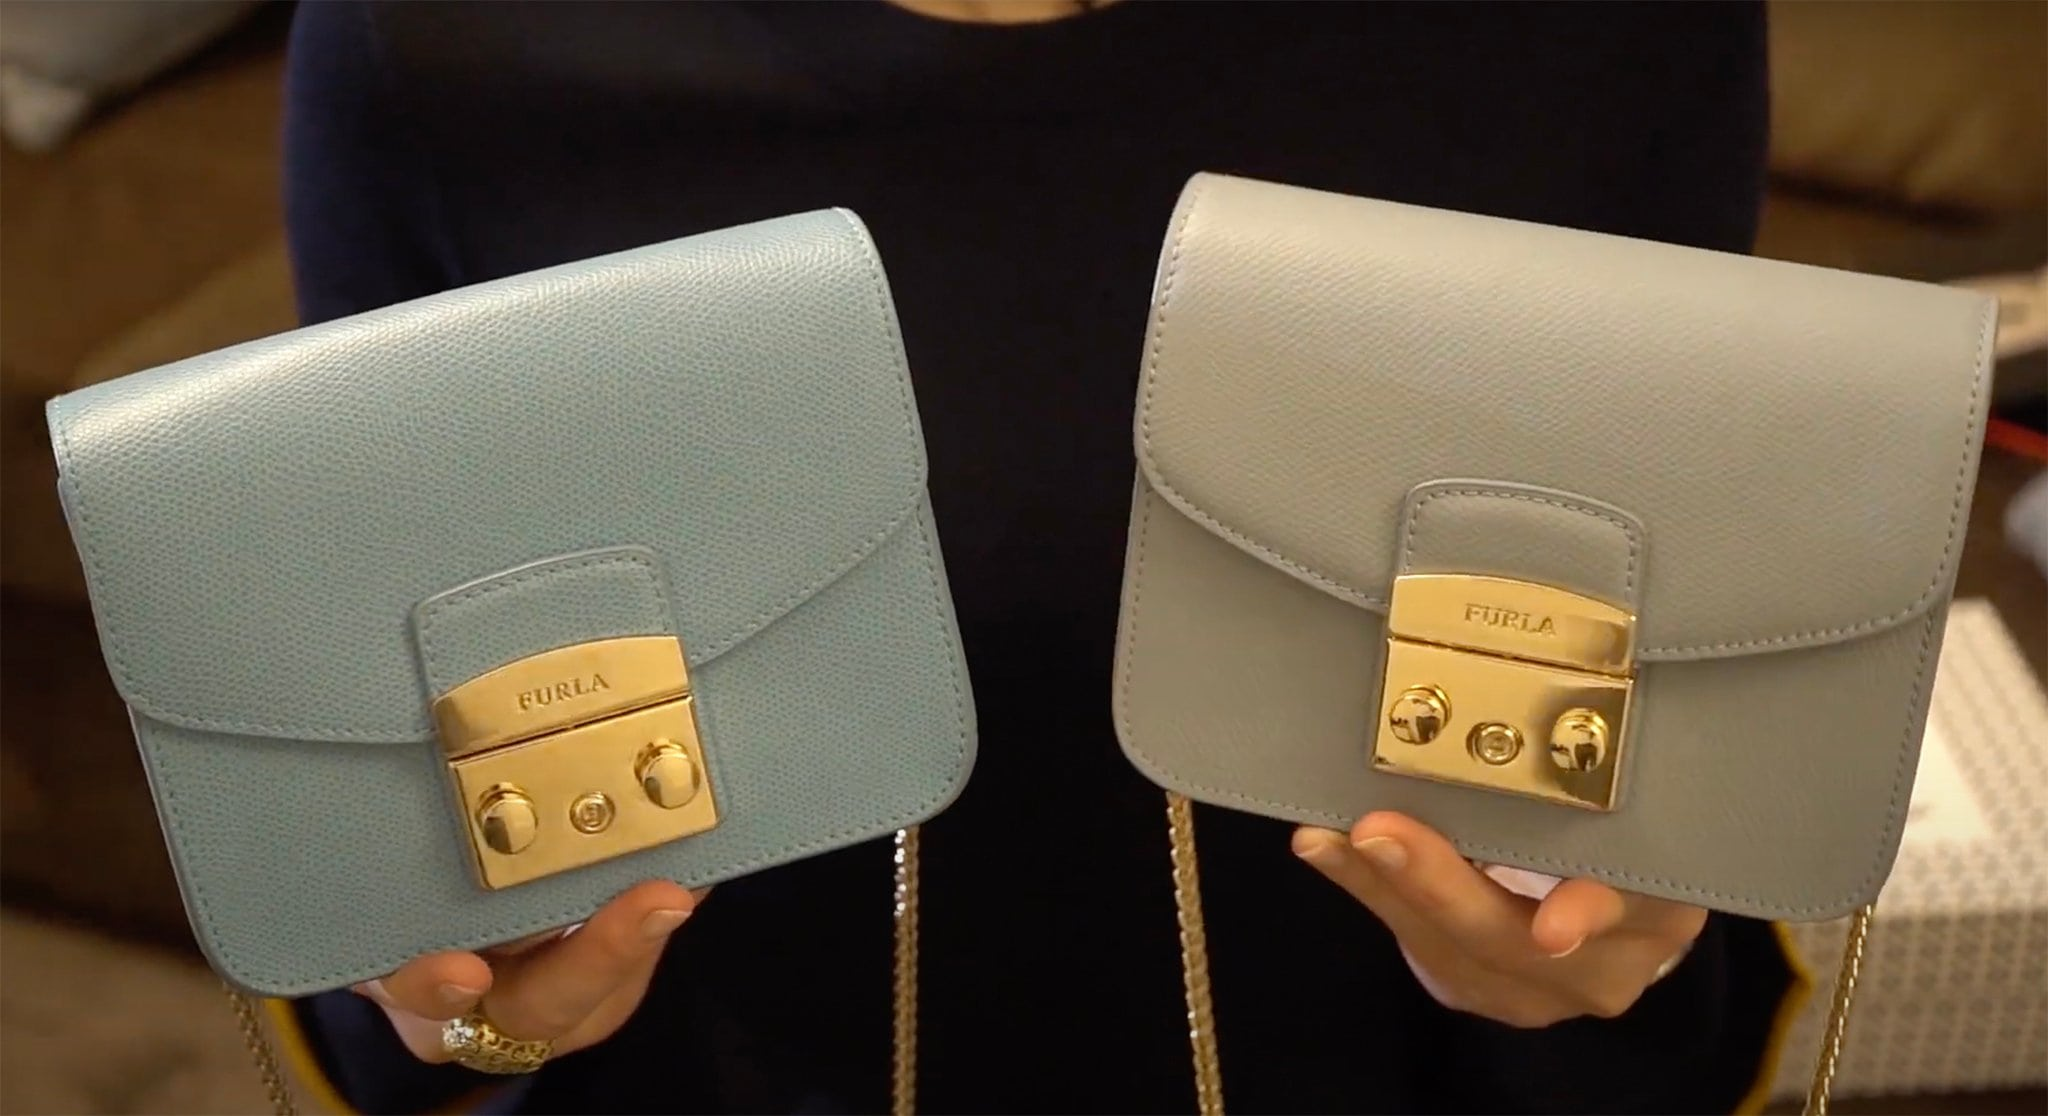 A real Furla bag (left) is crafted from smooth buttery leather, while a fake Furla bag (right) is rather rigid